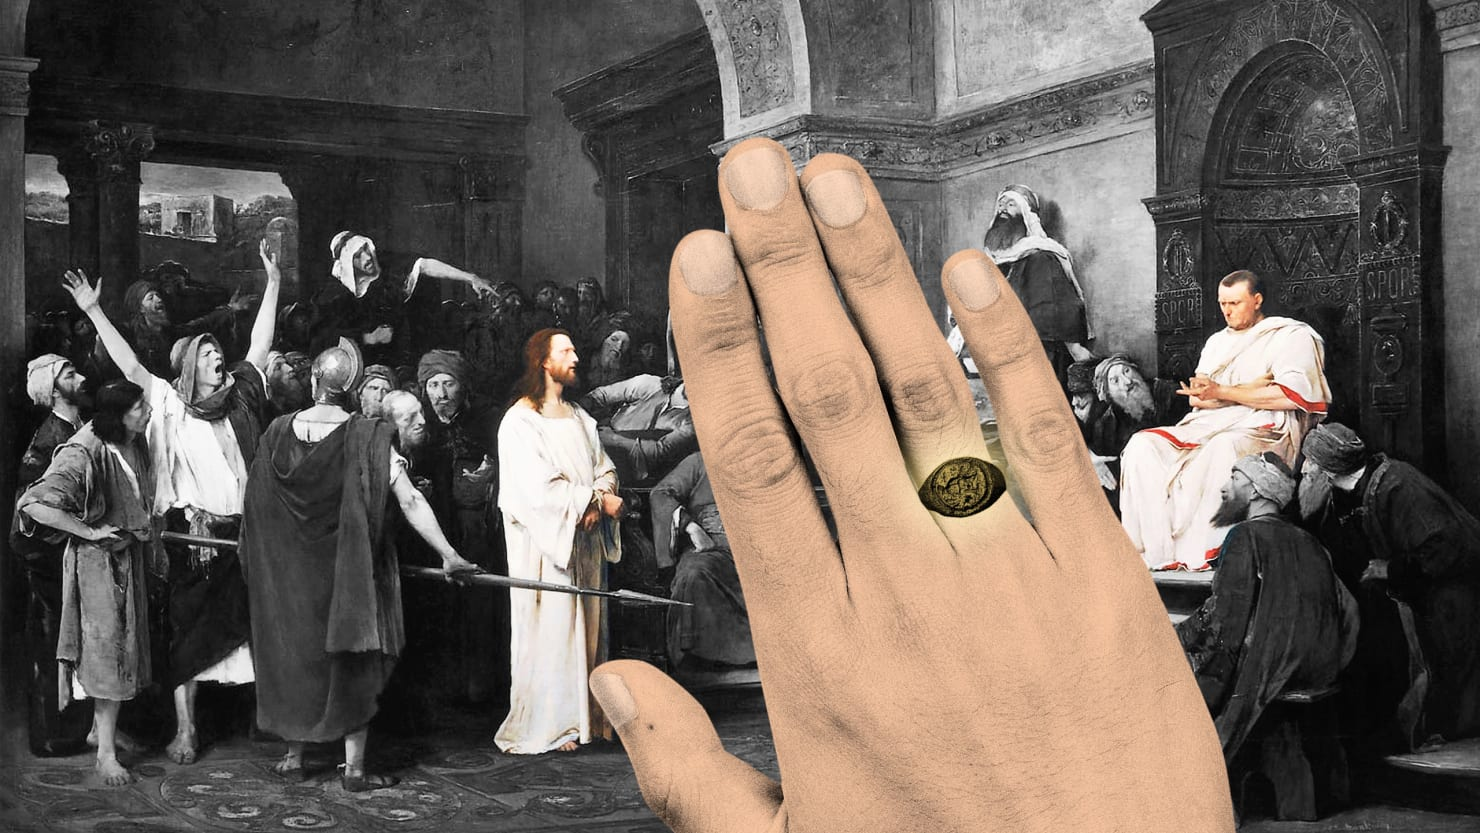 Did This Ring Belong to Pontius Pilate?